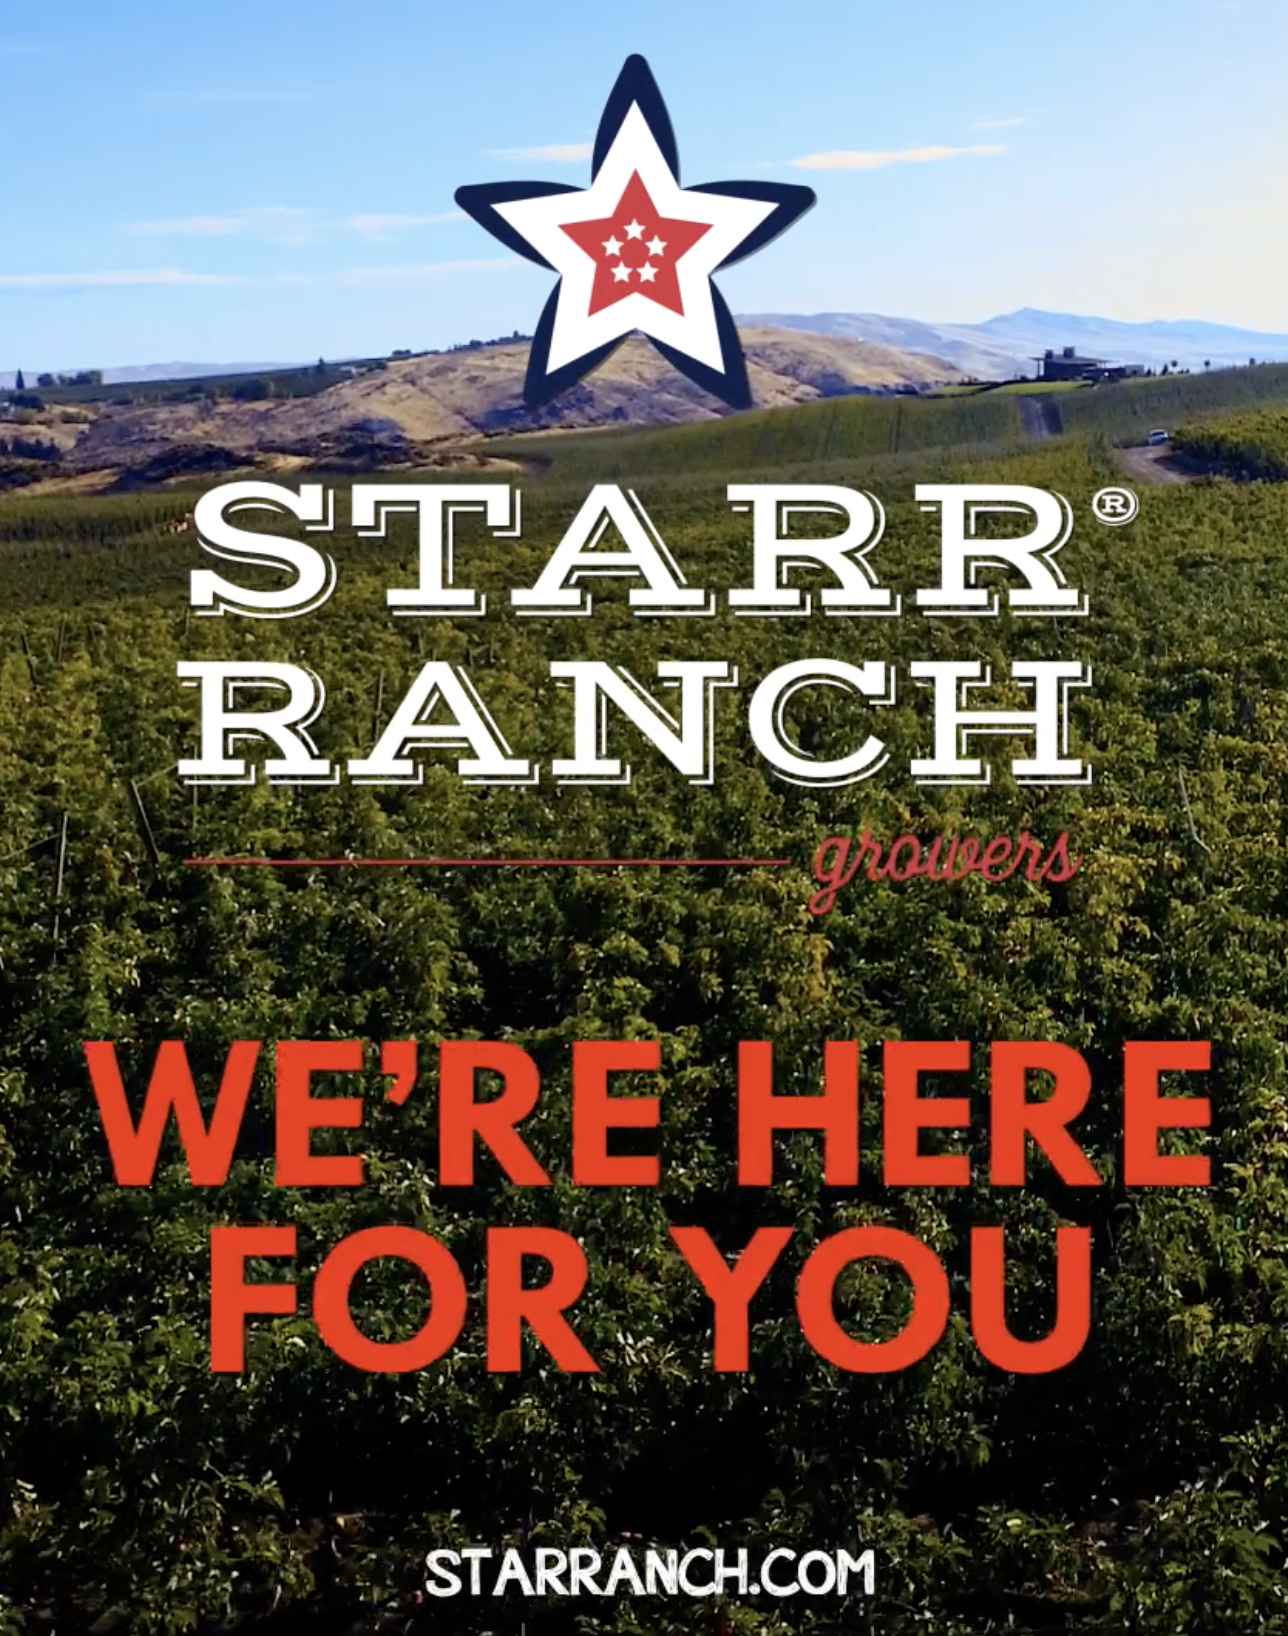 Starr Ranch Growers: Here For You